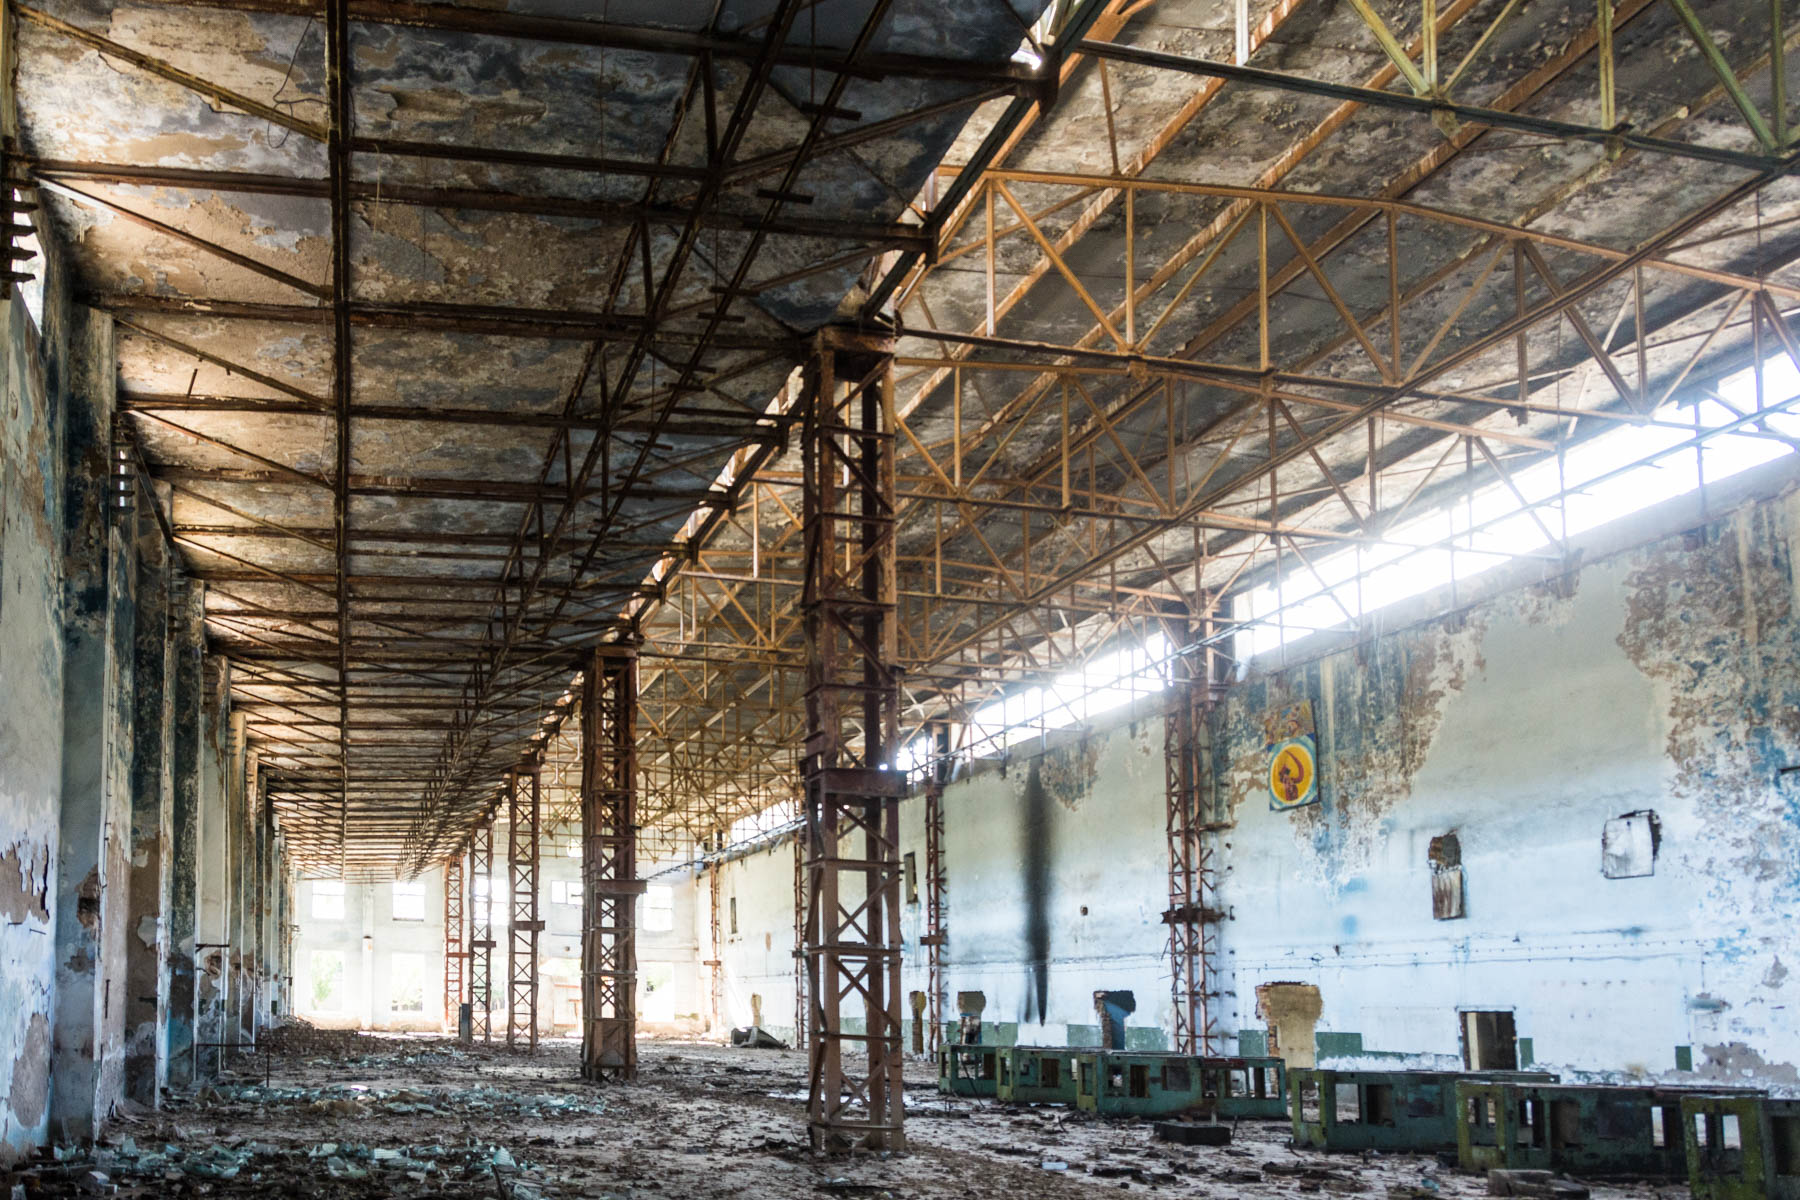 Abandoned Soviet factory interior in Min Kush, Kyrgyzstan - Lost With Purpose